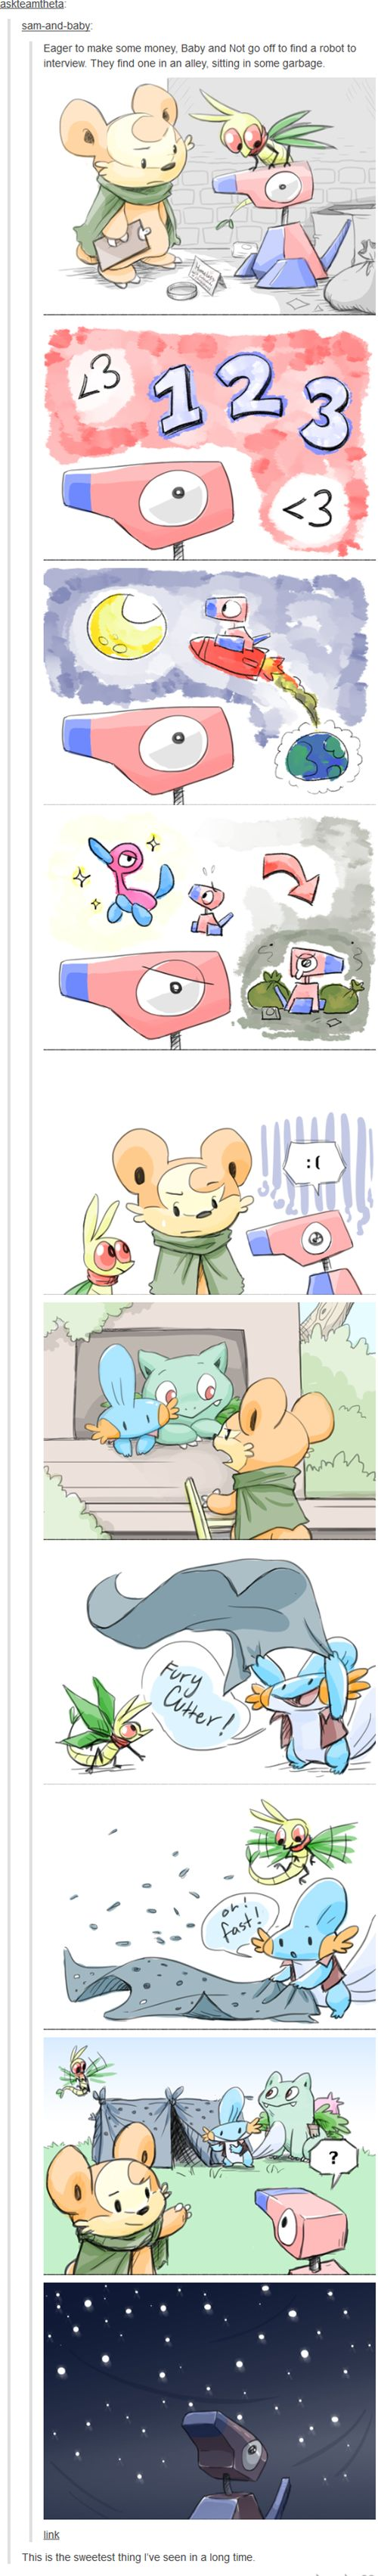 Helping Porygon Live His Dreams - This is really sweet :]